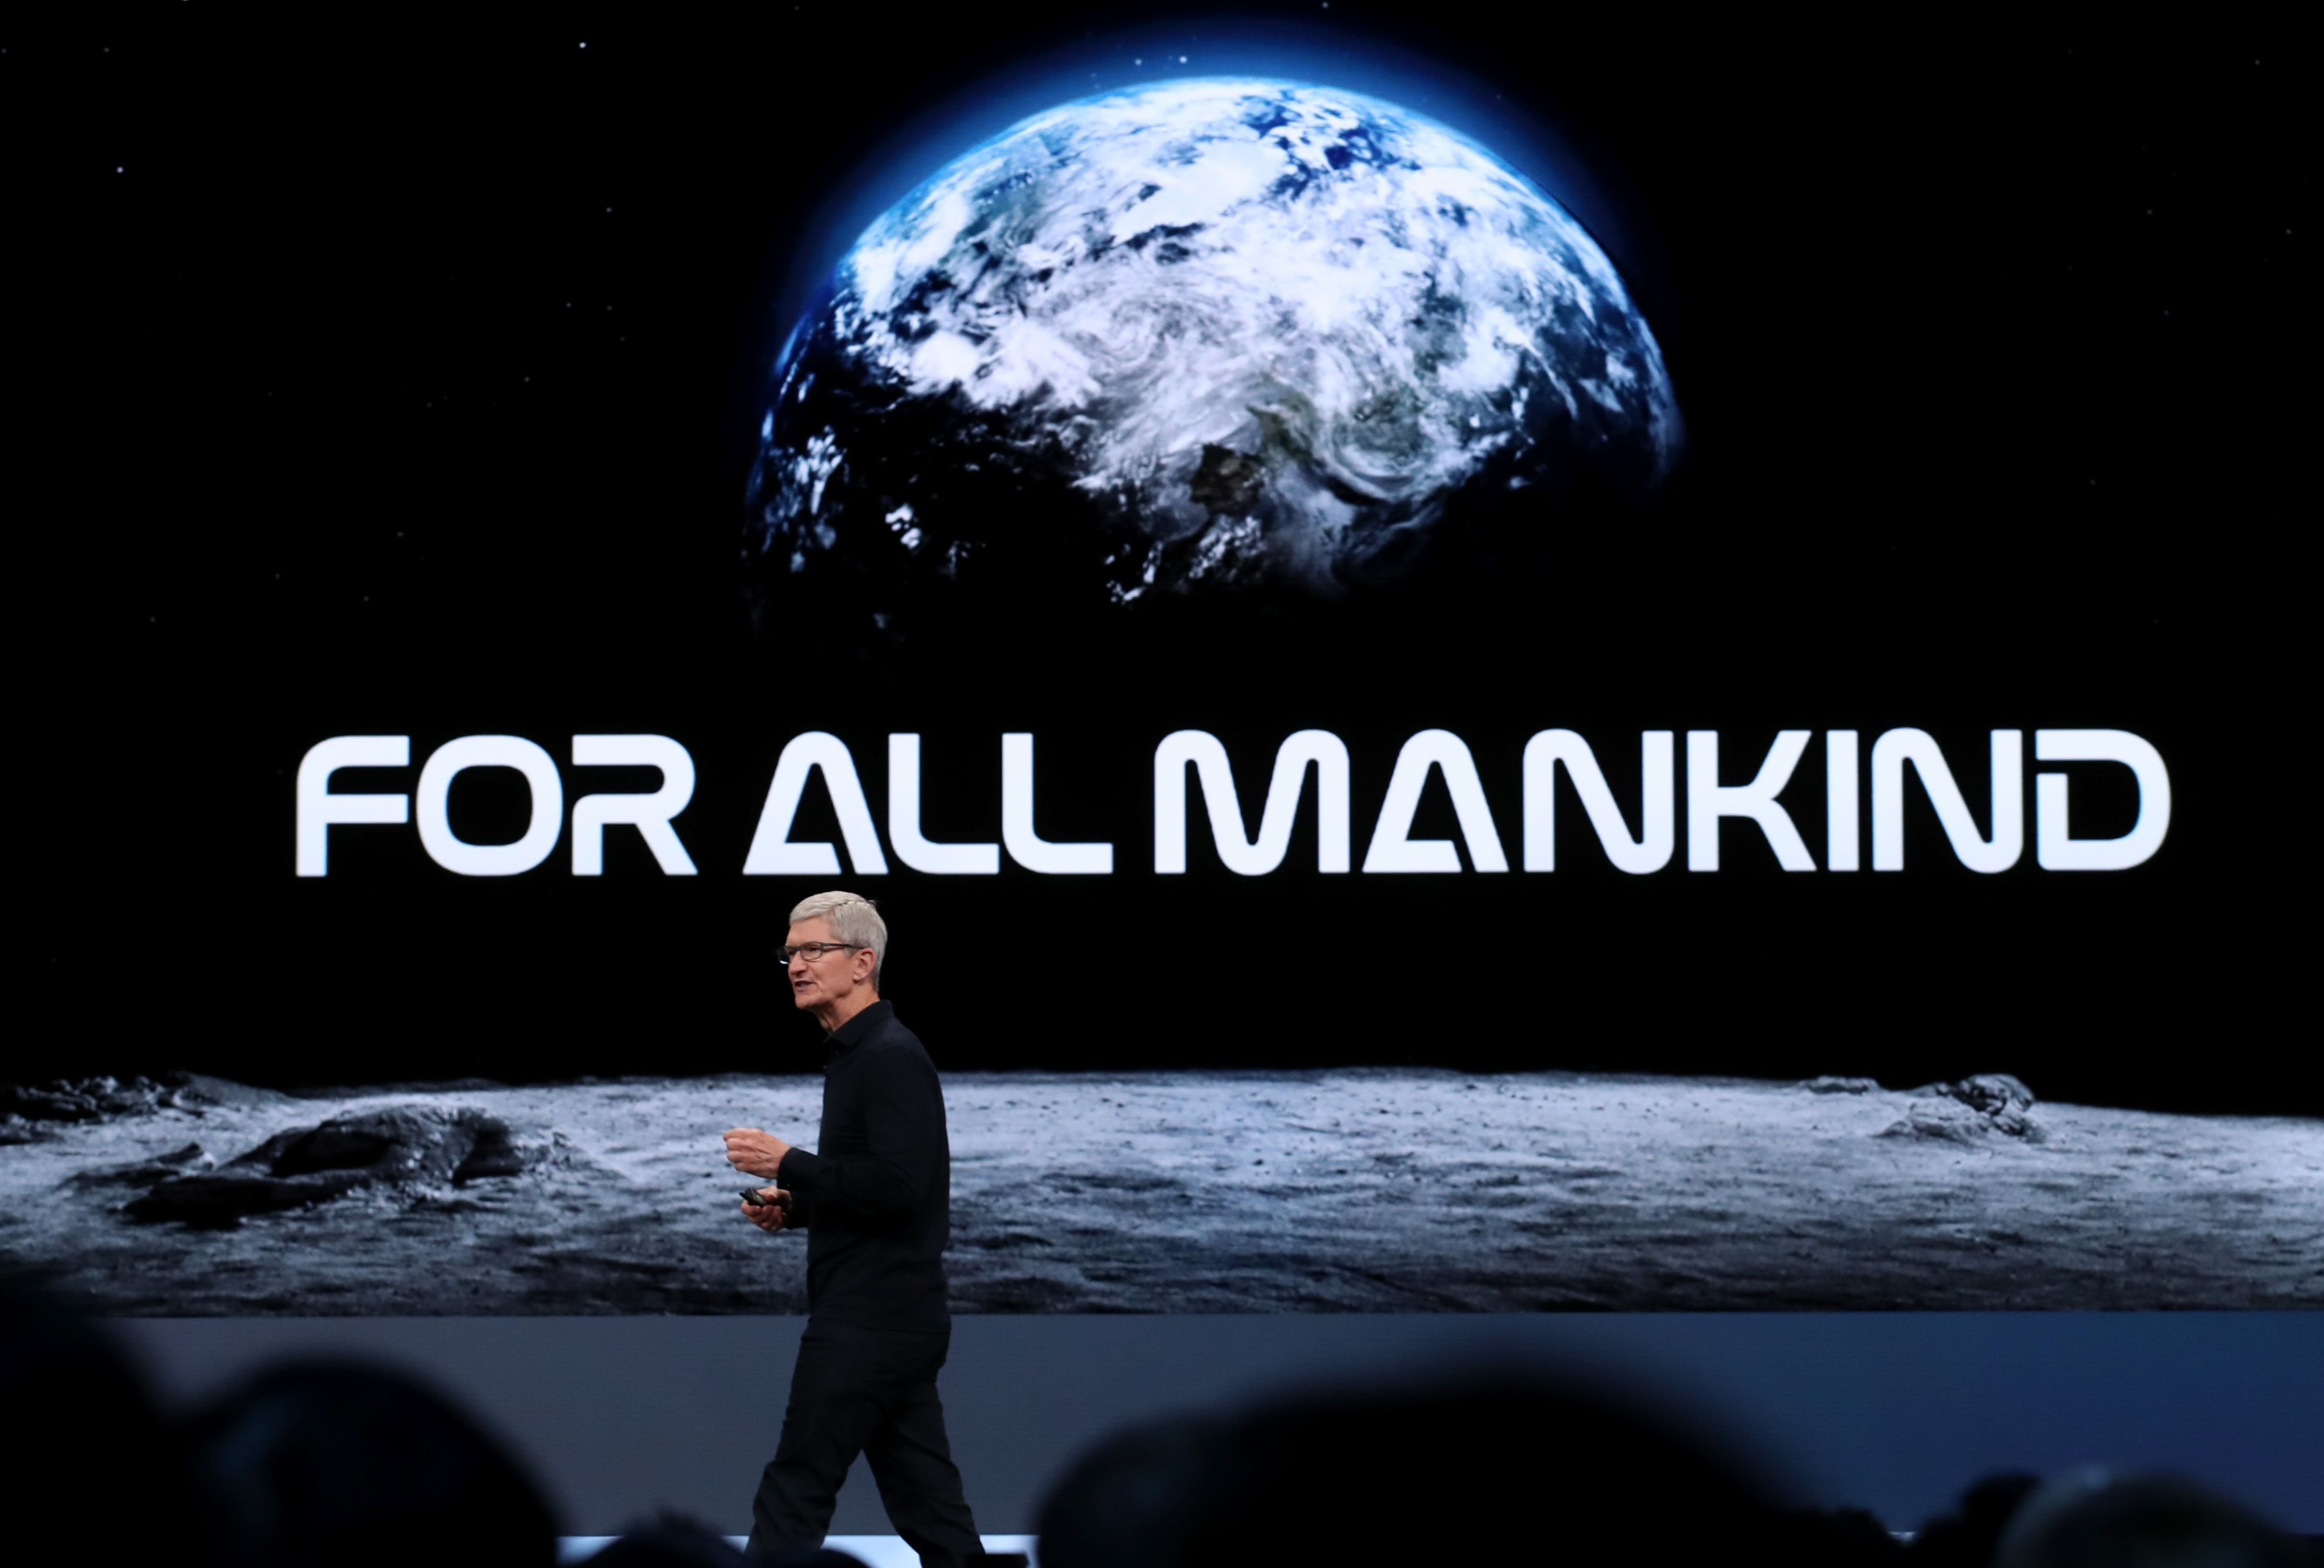 What If the Soviets Beat NASA to the Moon? Apple's New Show Reimagines the Space Race